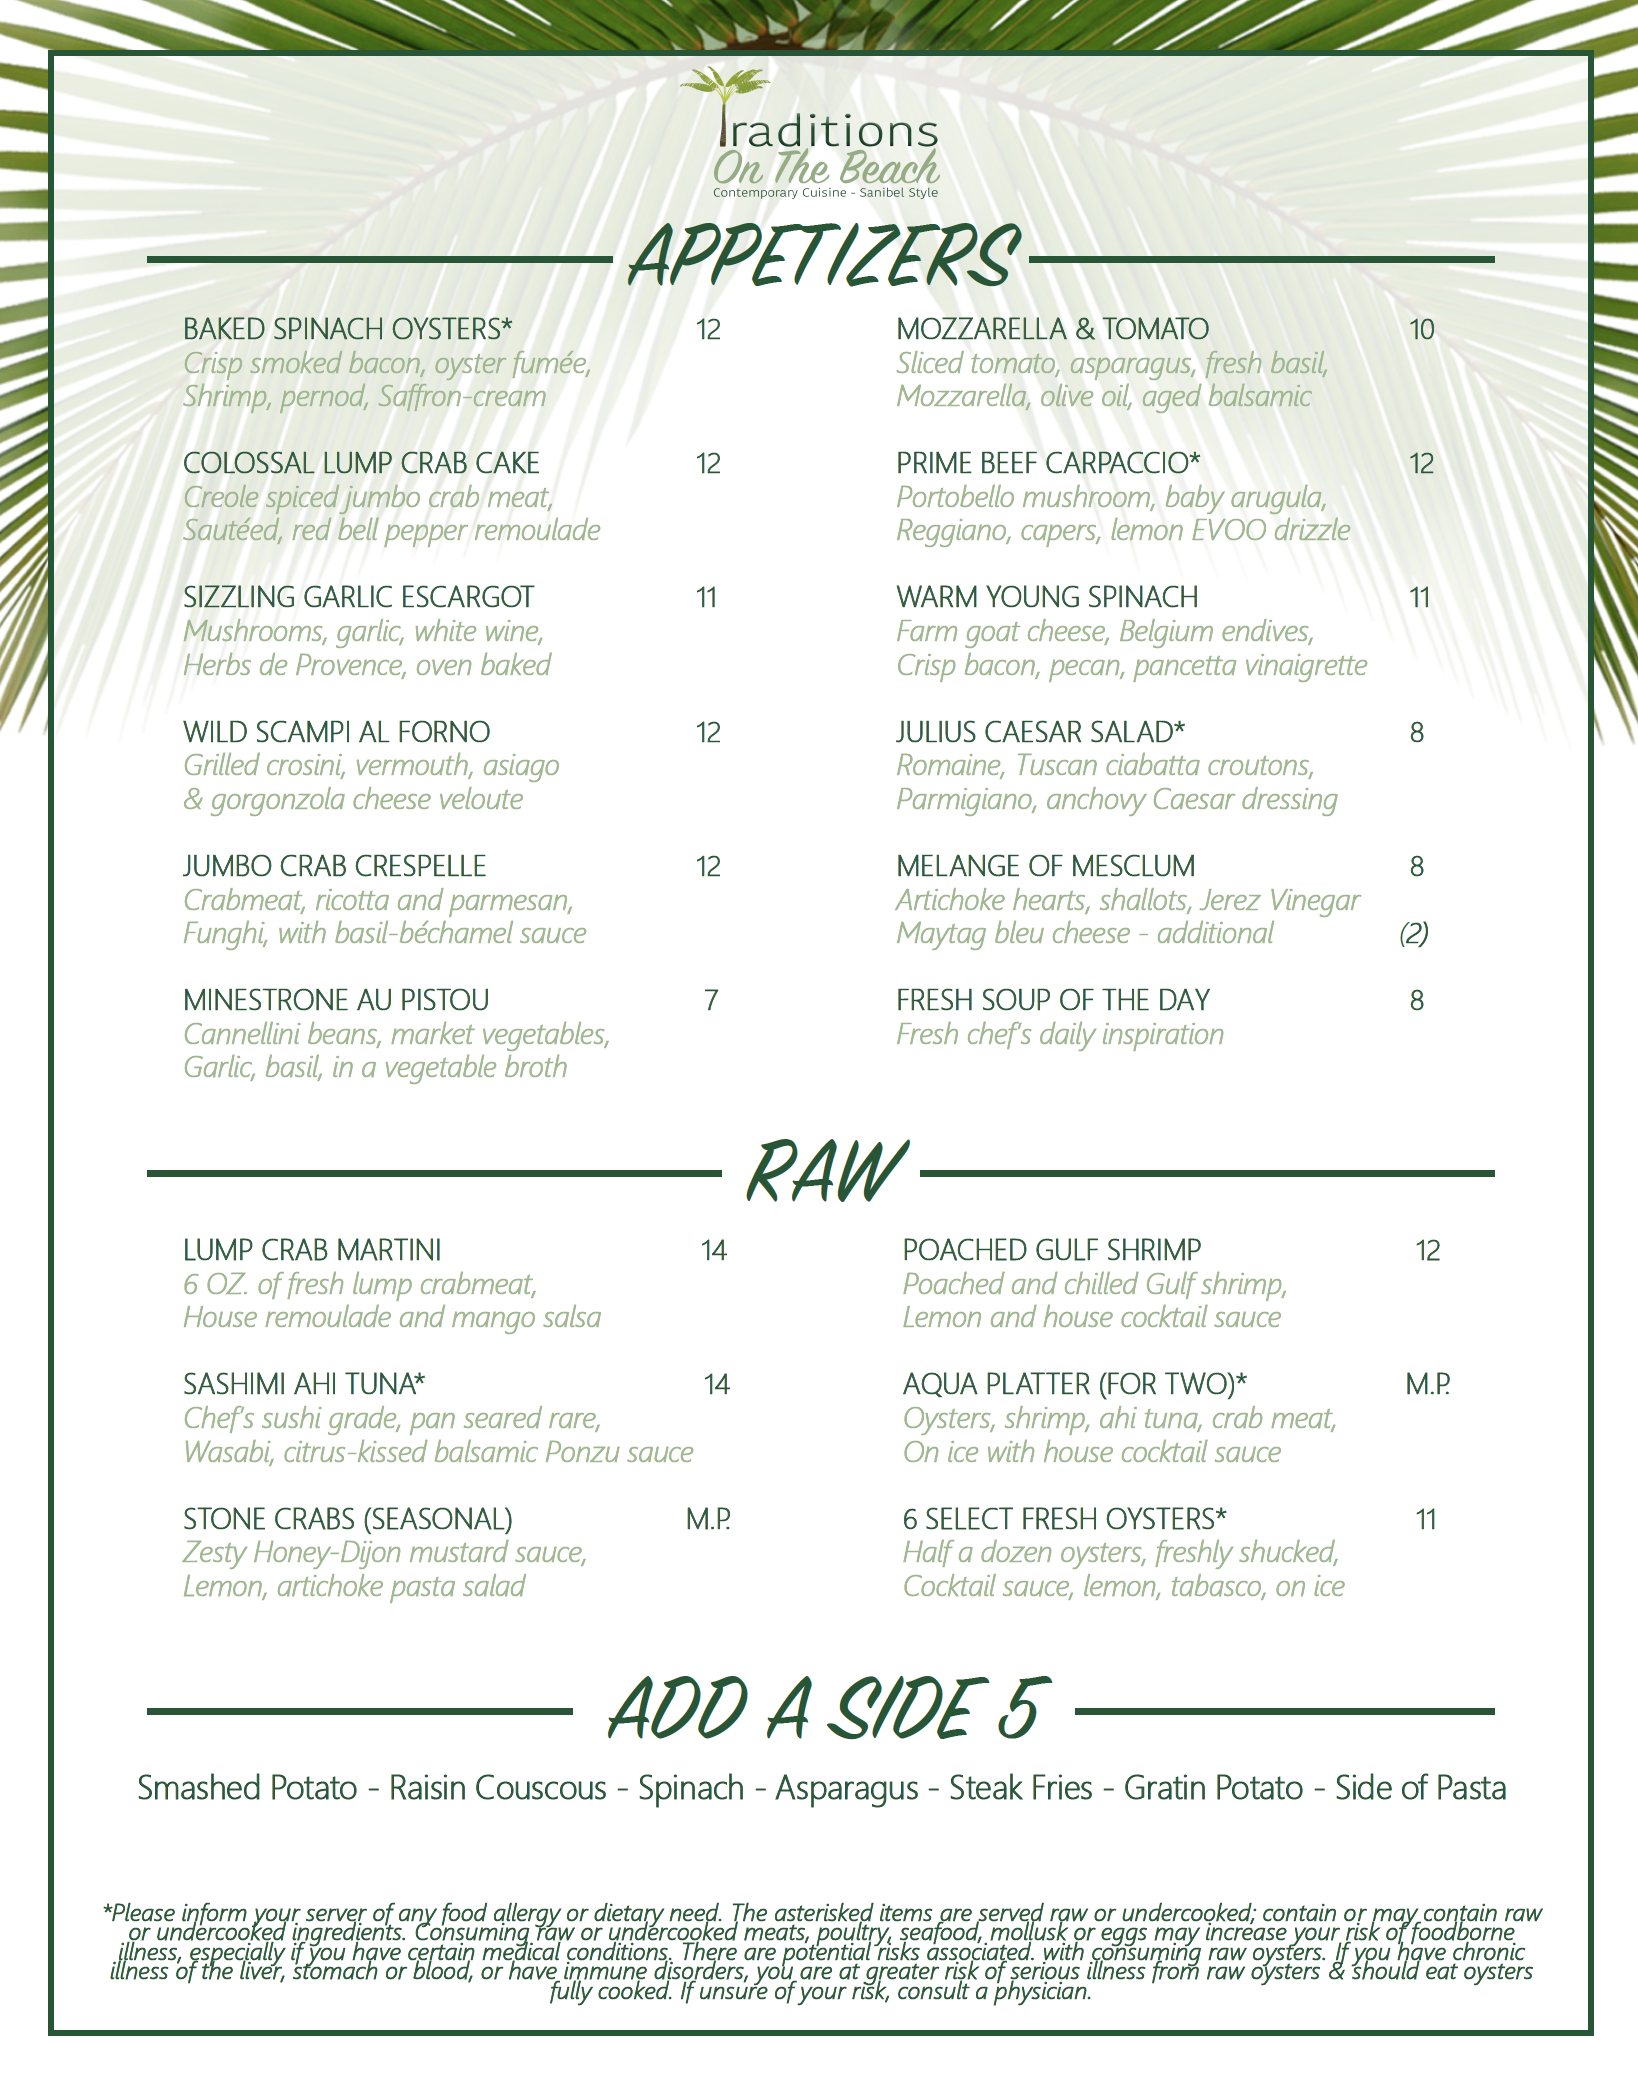 sanibel island restaurants - traditions on the beach dinner menu - page two